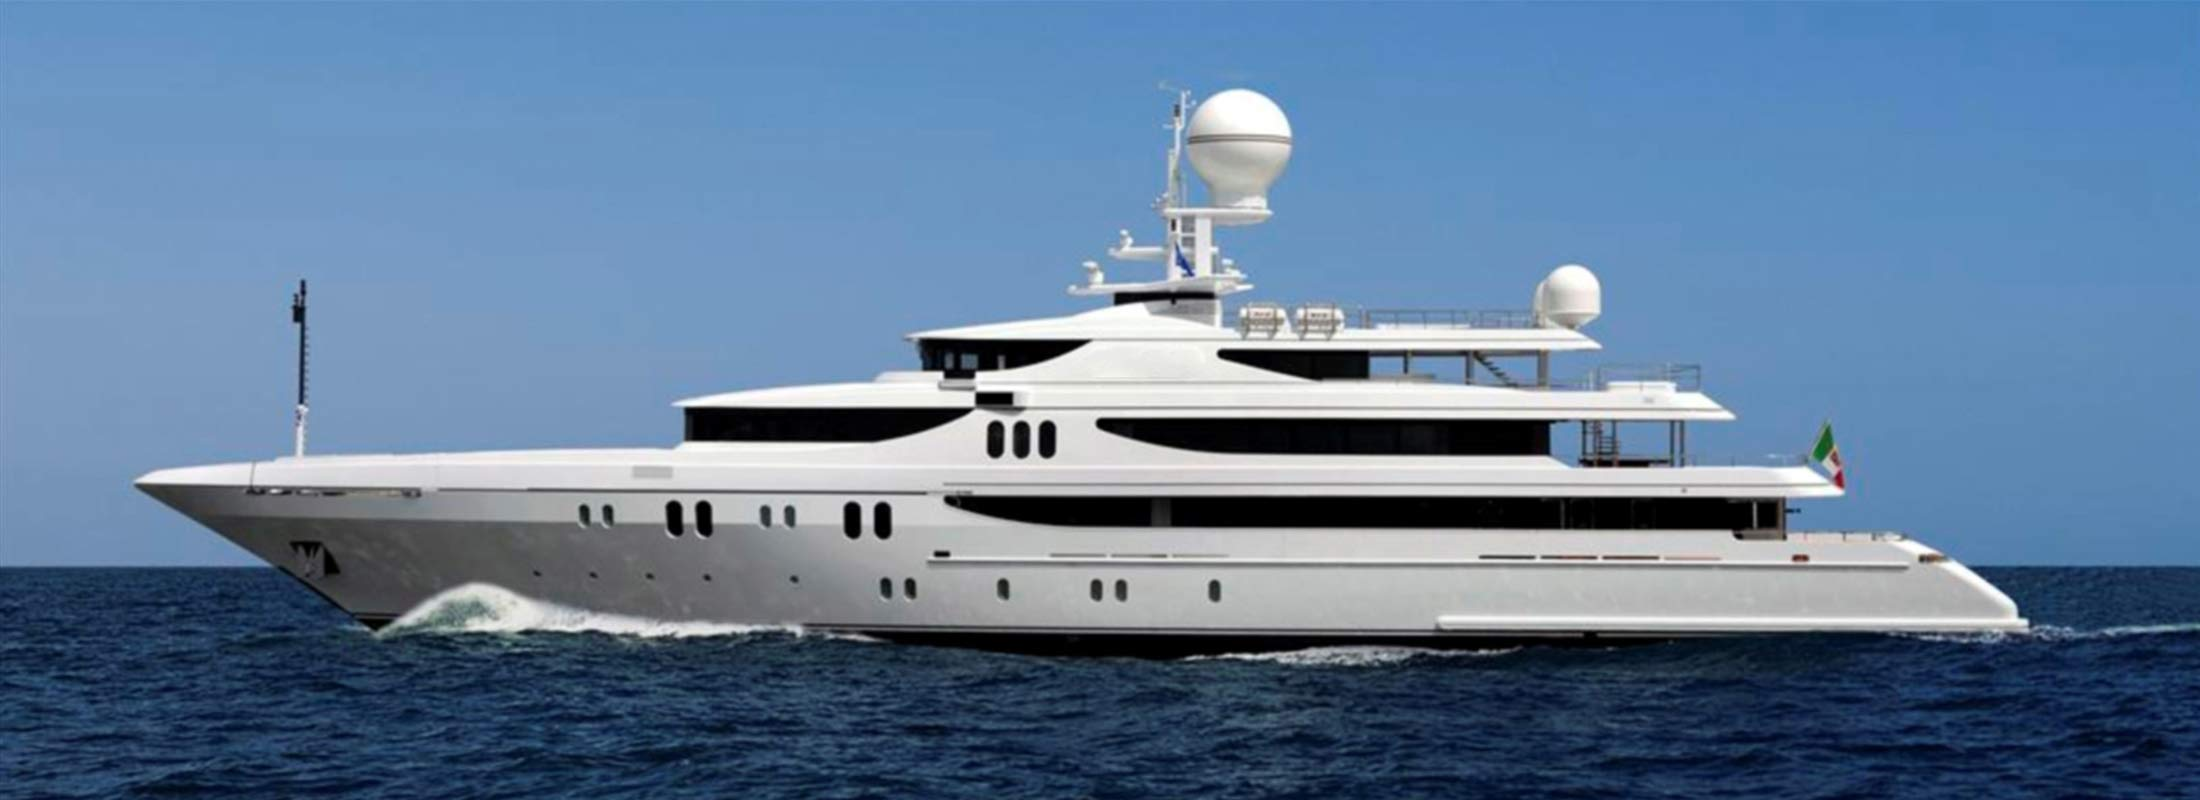 Double Down Motor Yacht for Charter Mediterranean Caribbean Sea slider 1